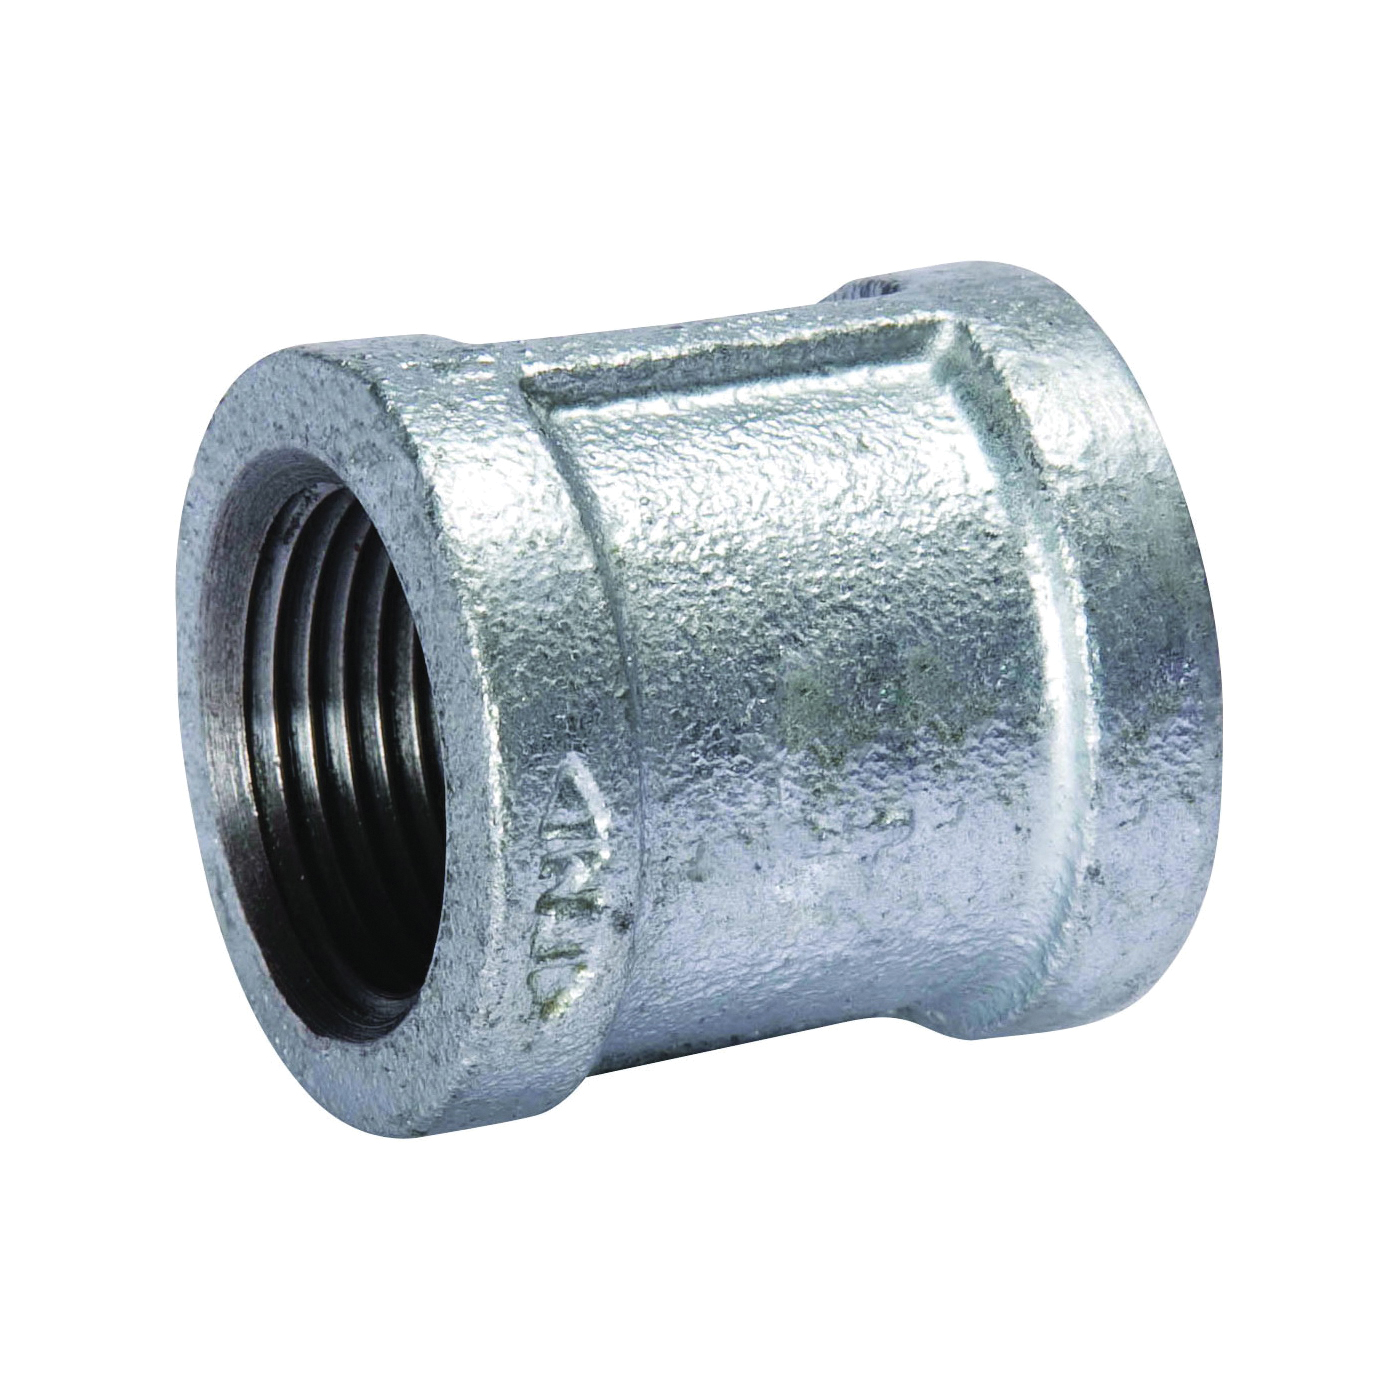 Picture of B & K 511-211BC Pipe Coupler, 4 in, Threaded, 150 psi Pressure